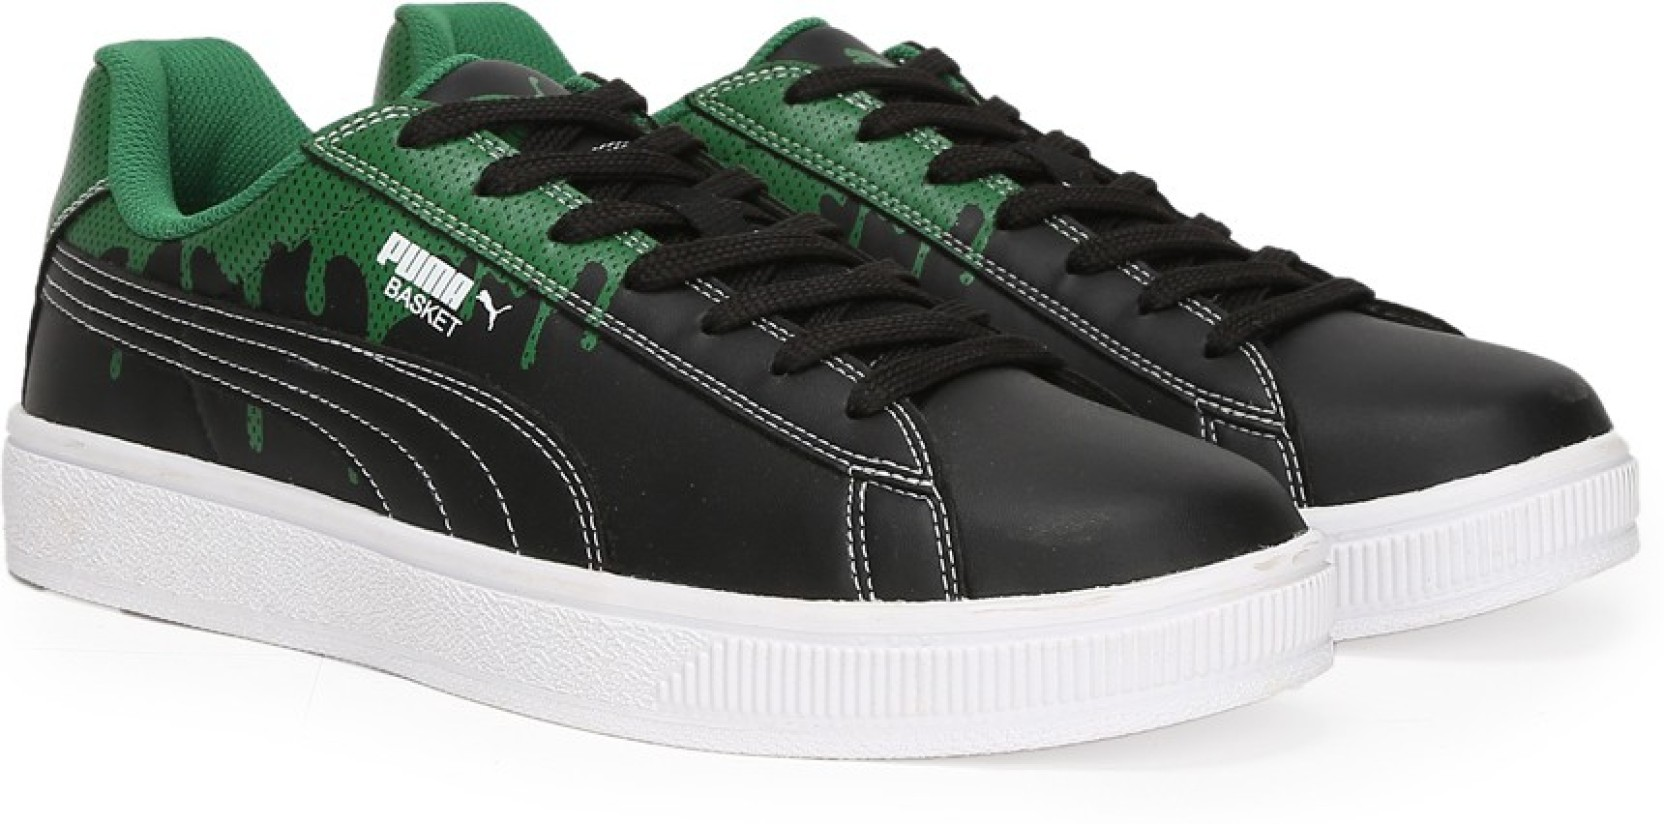 ffb077dd1e6 Puma Basket City DP Sneakers For Men - Buy Puma Black-Amazon Green ...